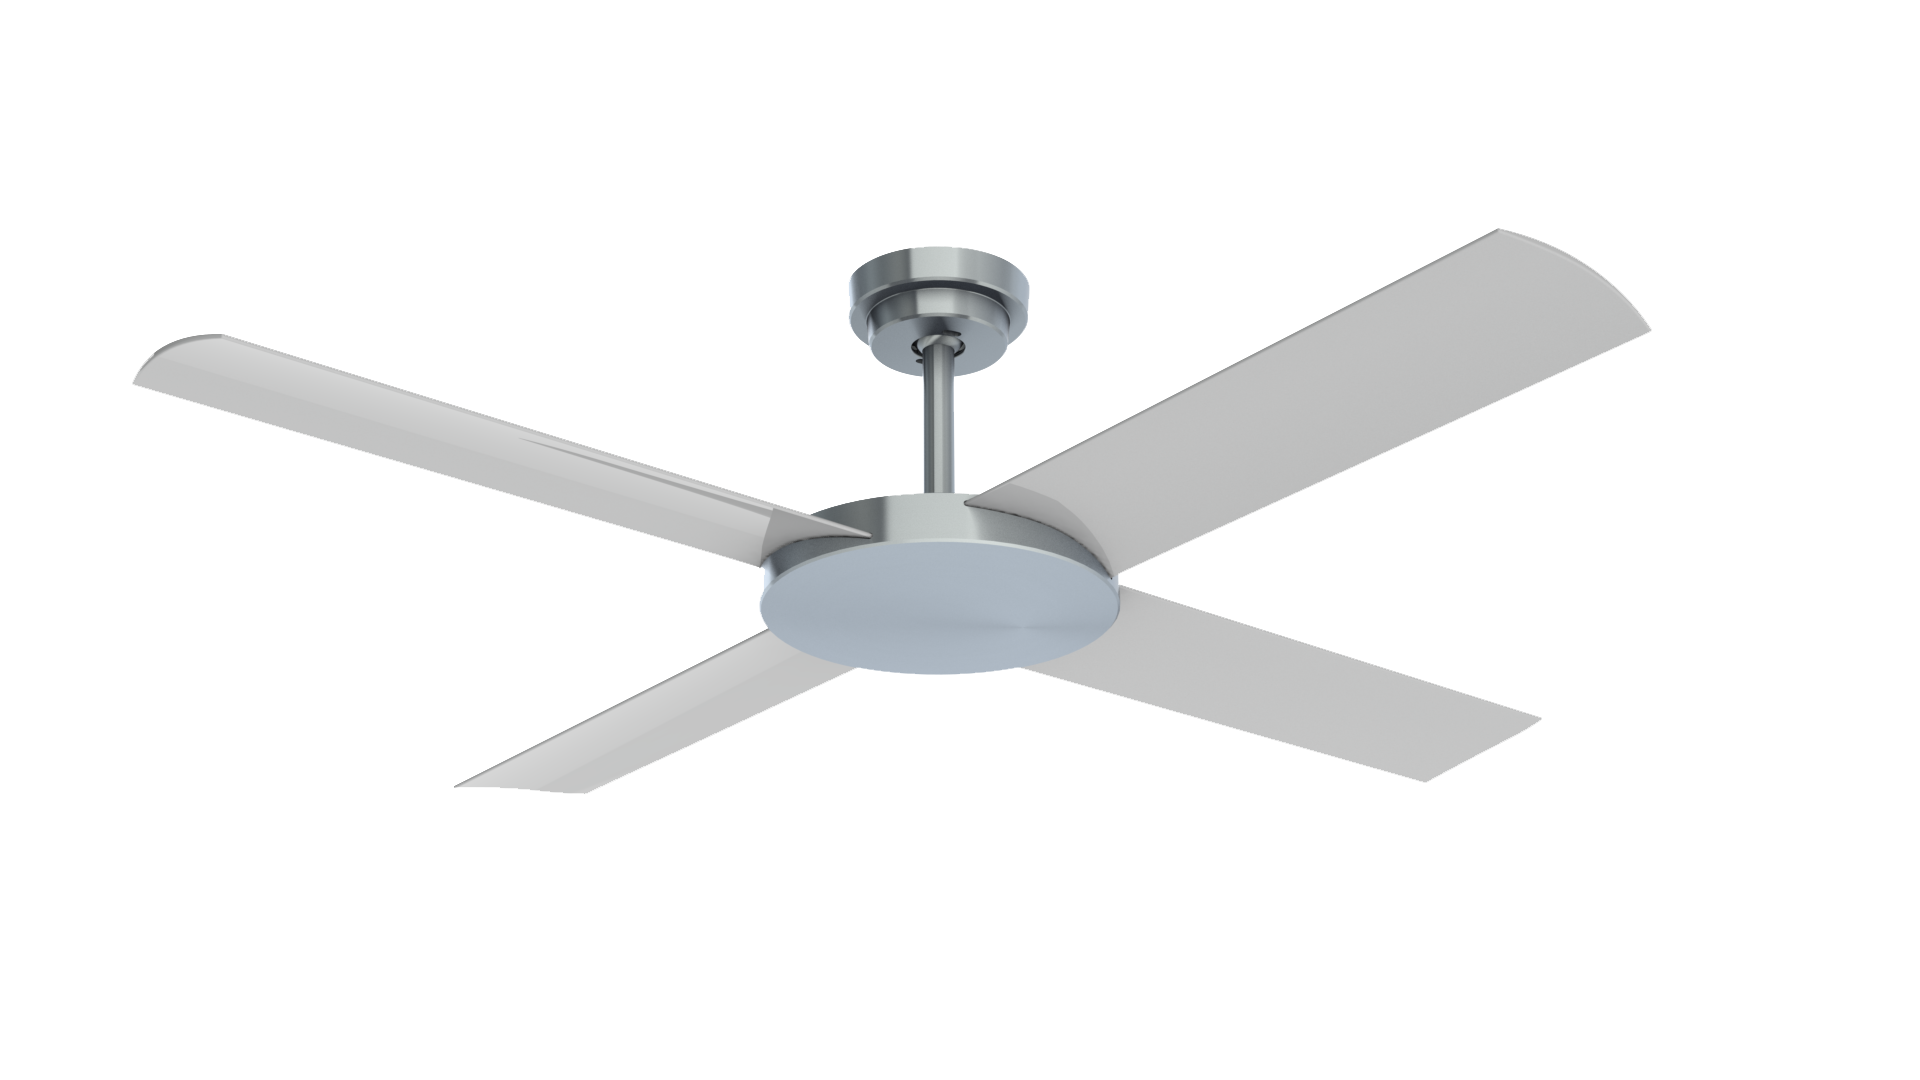 "Revolution 3 Brushed Aluminium 52"" Indoor/Outdoor Ceiling Fan with Wall Control"